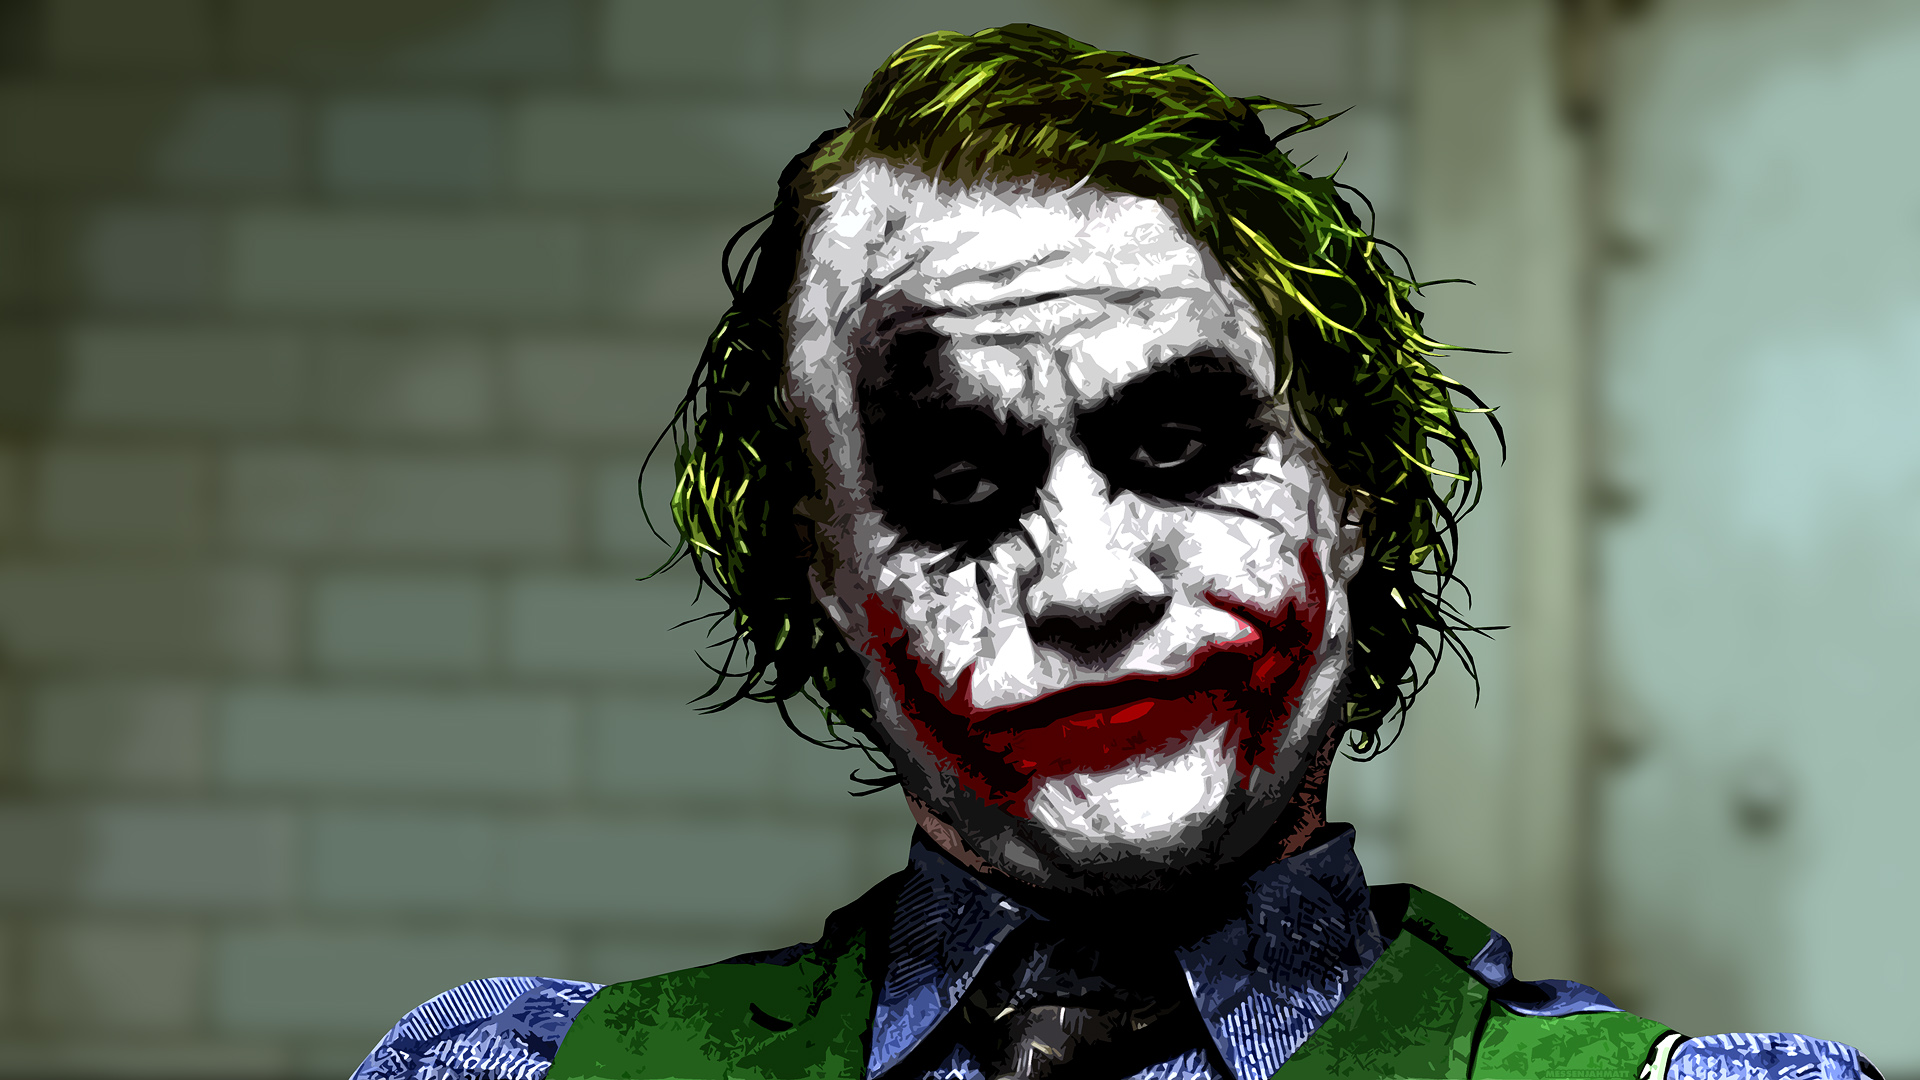 Joker (Heath Ledger) in interrogation room